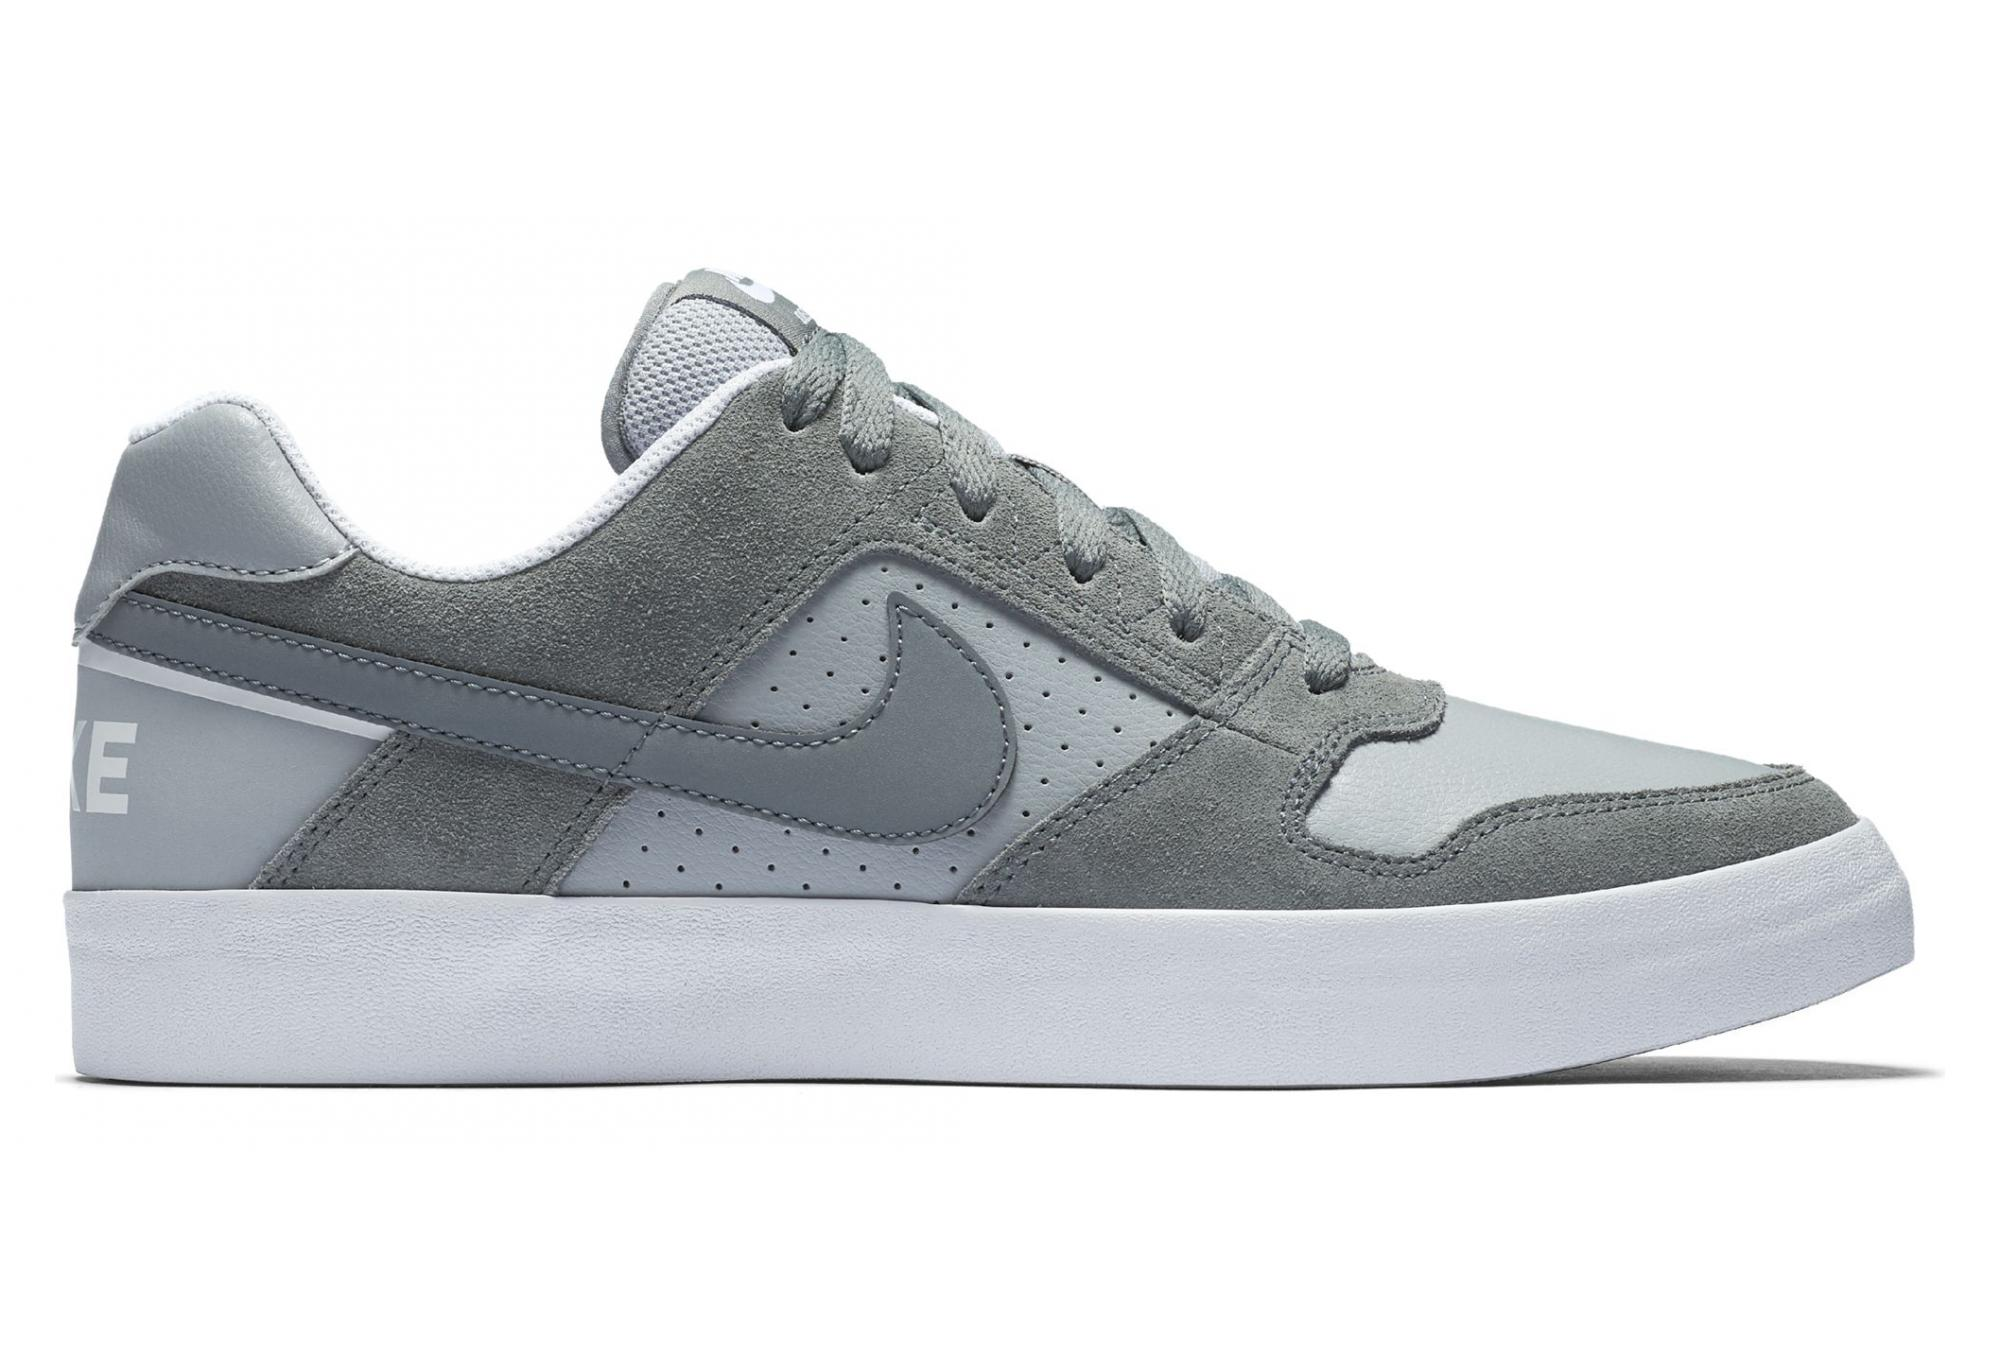 9cdfb977c1 Nike Sb Delta Force Vulc Shoe Grey | Alltricks.com